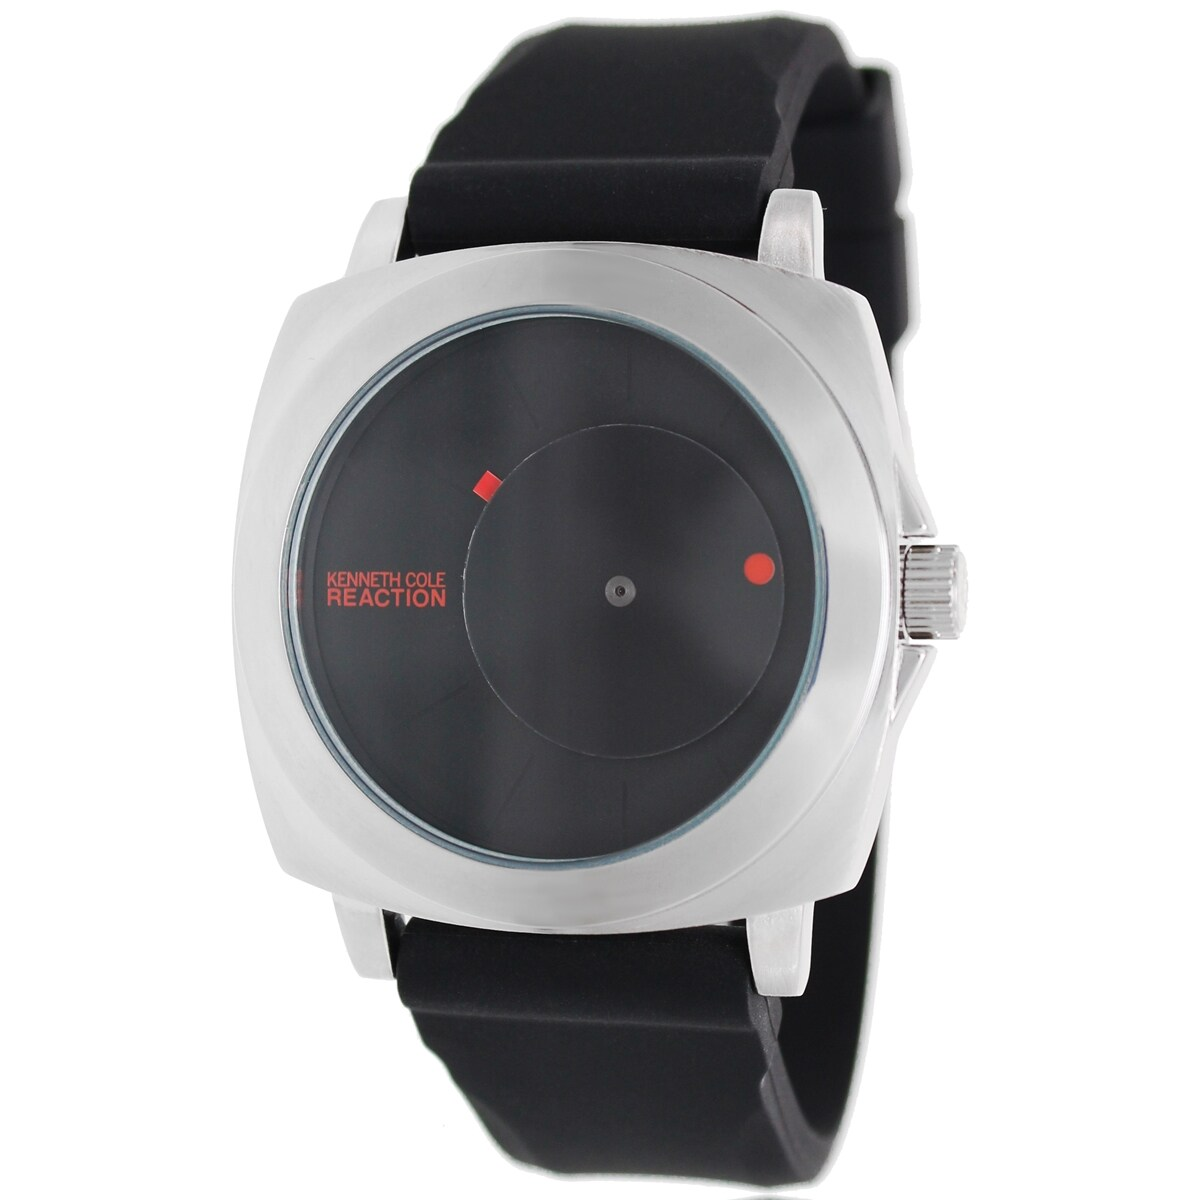 Kenneth Cole Reaction Men's RK1327 Black Silicone Quartz Watch with Black Dial